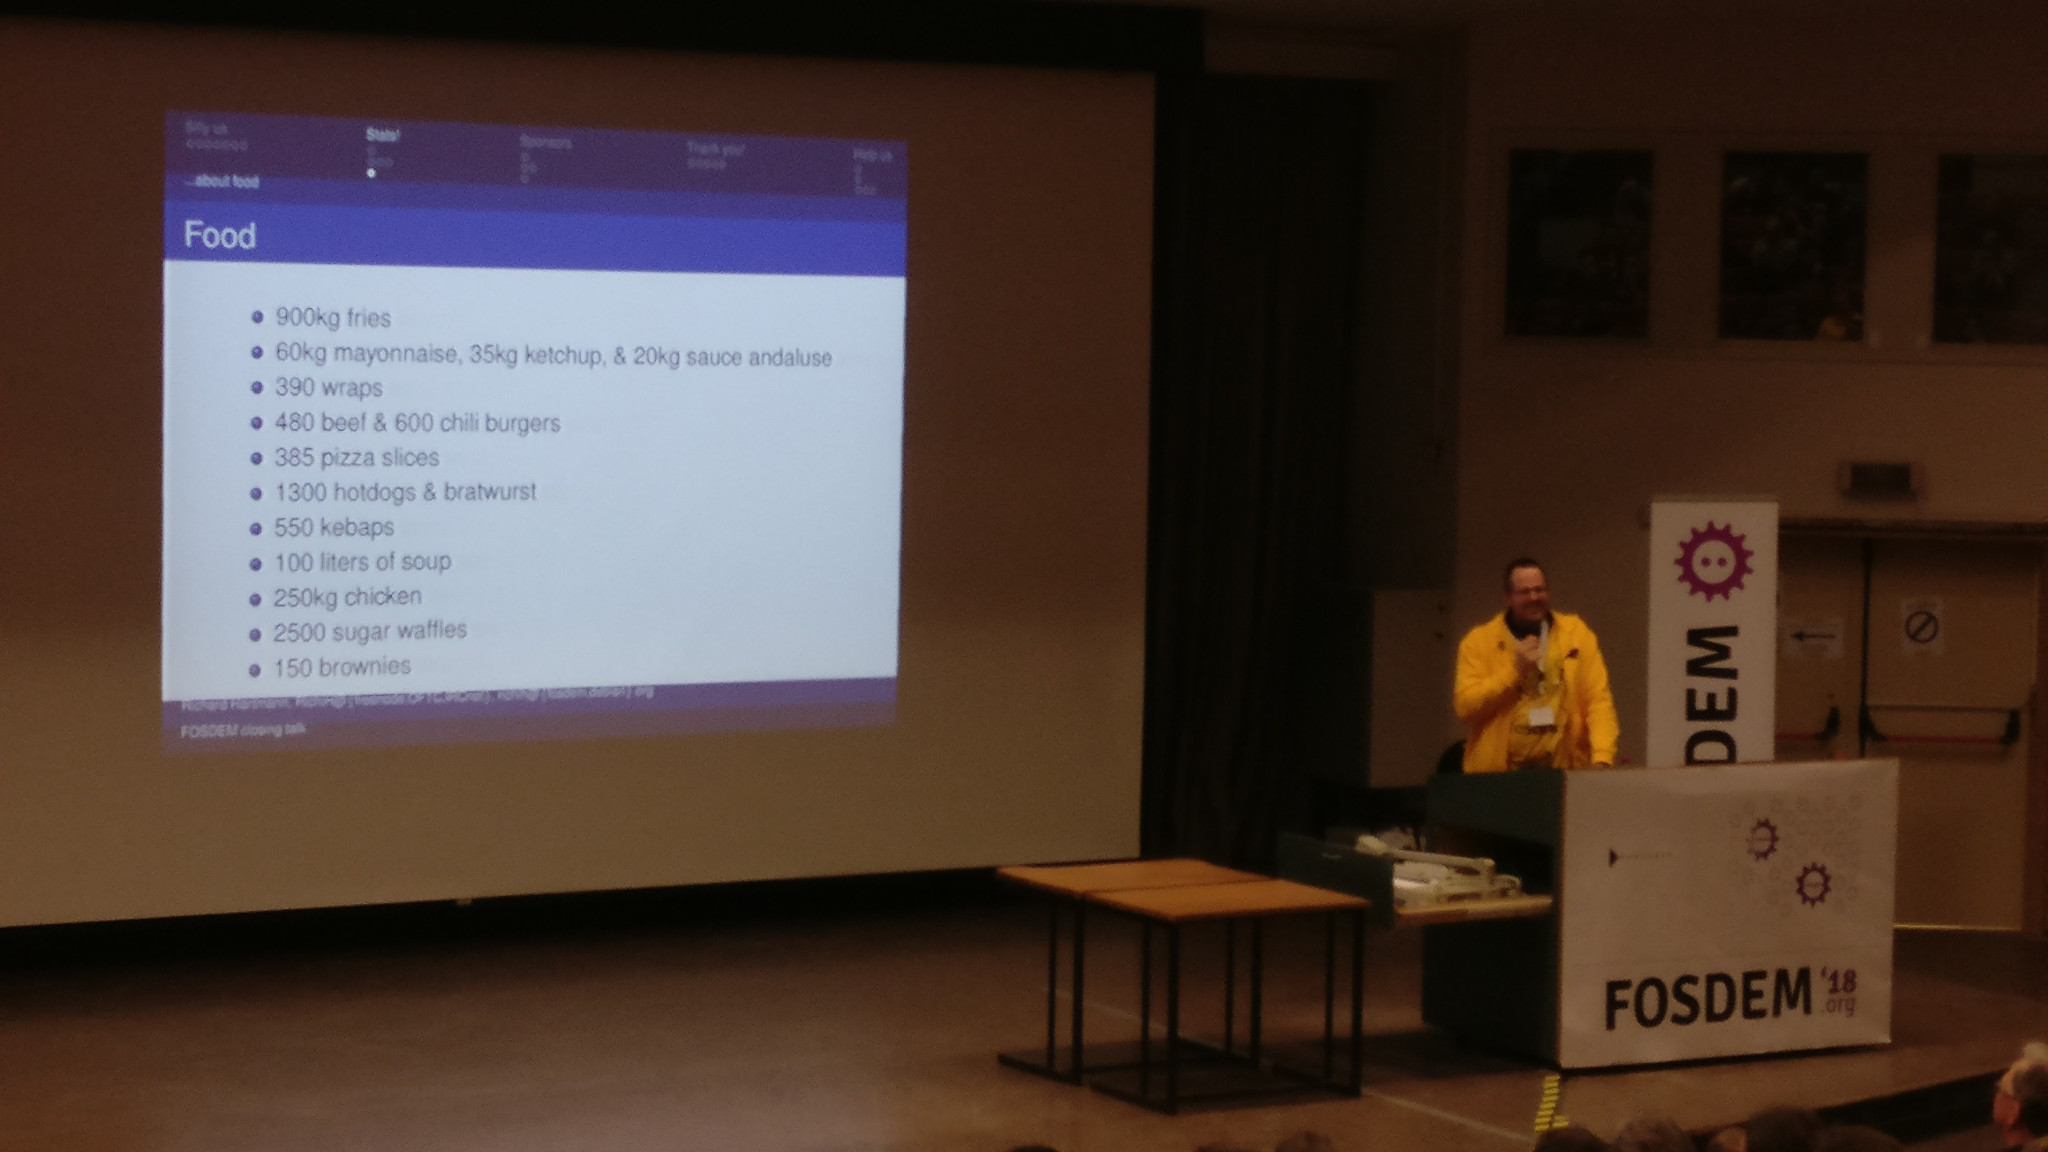 Incredible statistics related to food at FOSDEM 2018